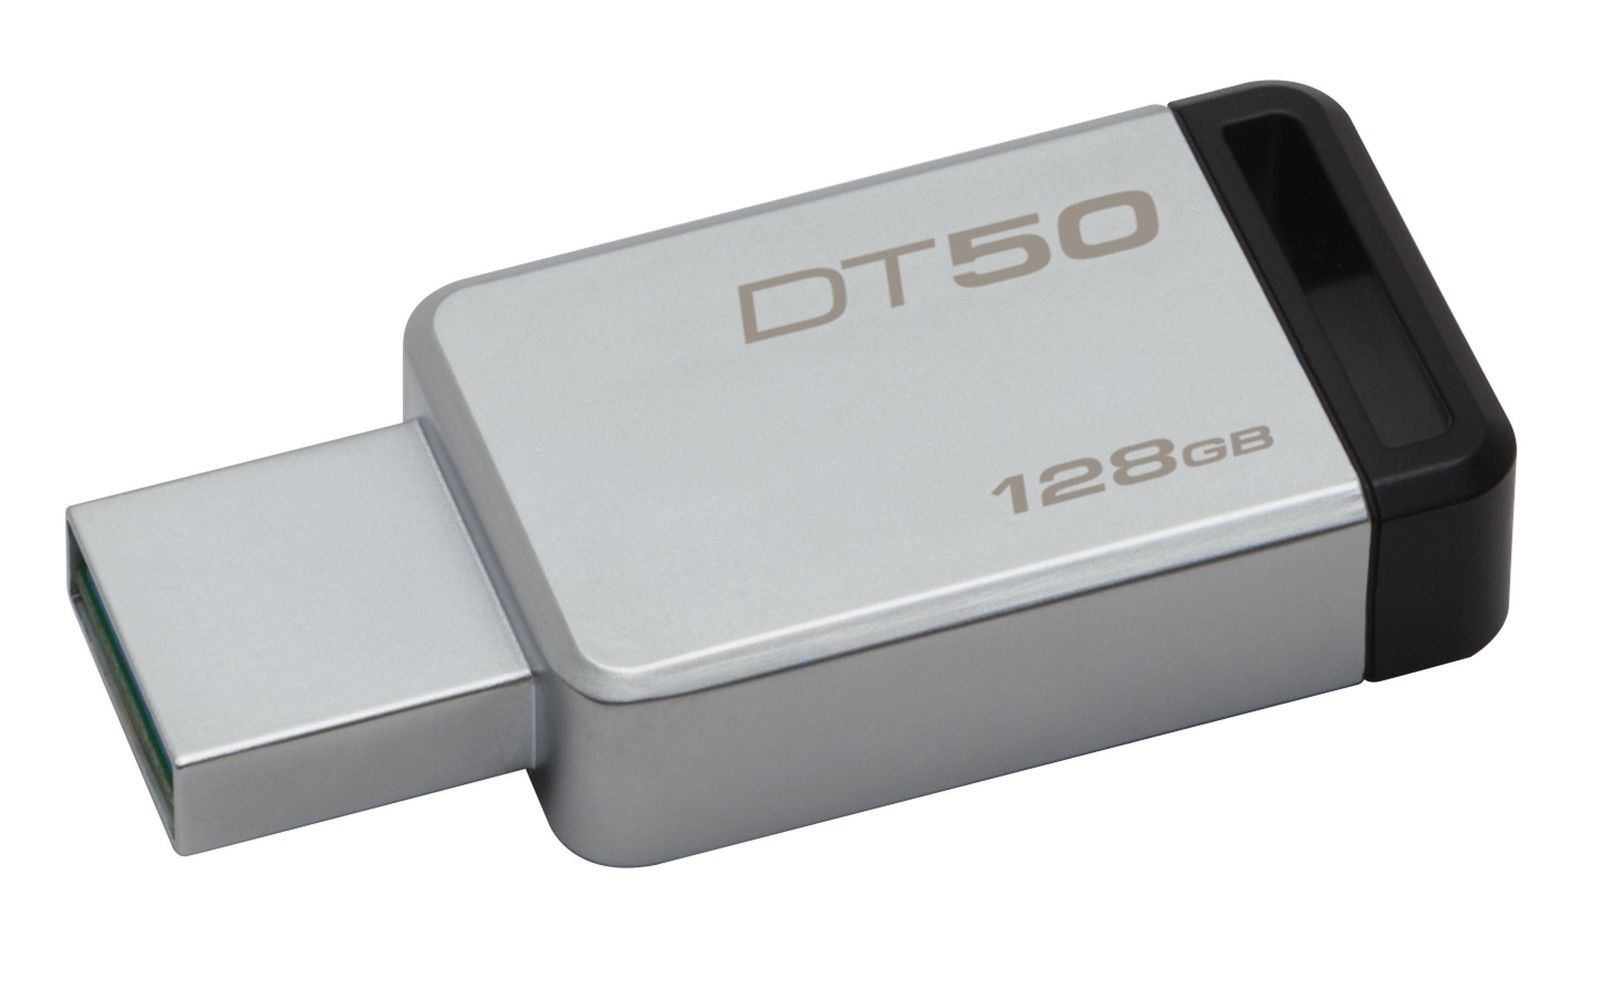 Flash Drive Kingston Data Traveler 50 128GB USB 3.0 Metal/Black